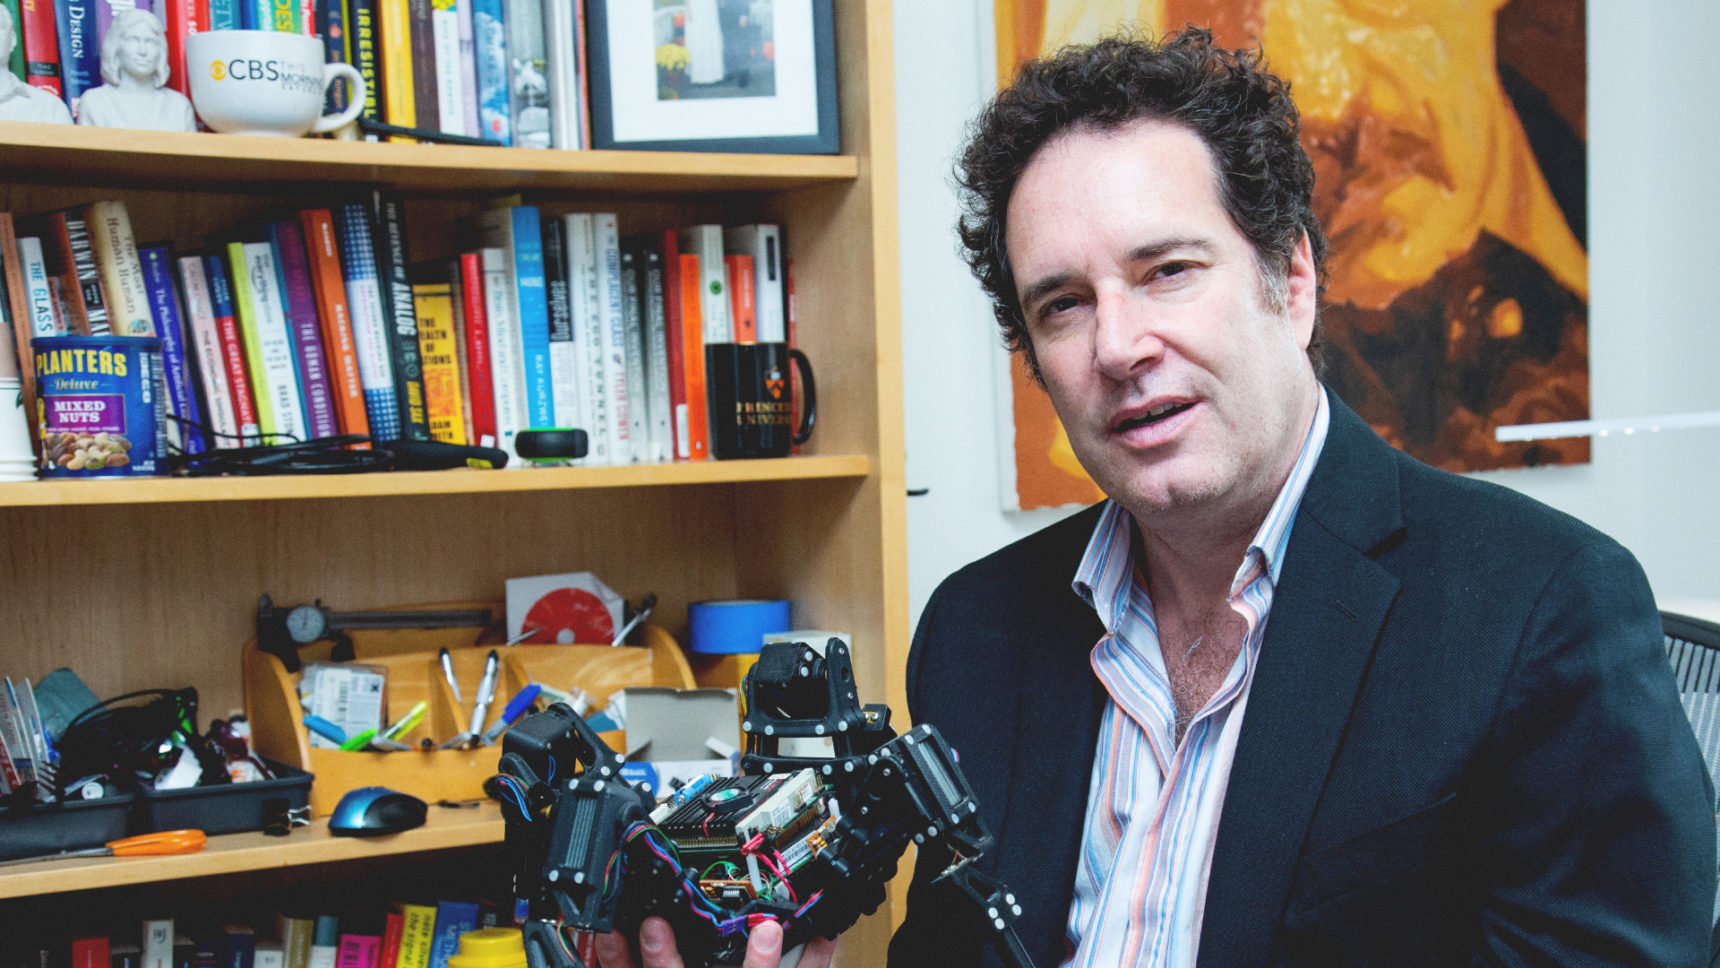 The roboticist Hod Lipson, the director of the Creative Machines Lab at Columbia University, uses robots to explore ancient questions about how people think.